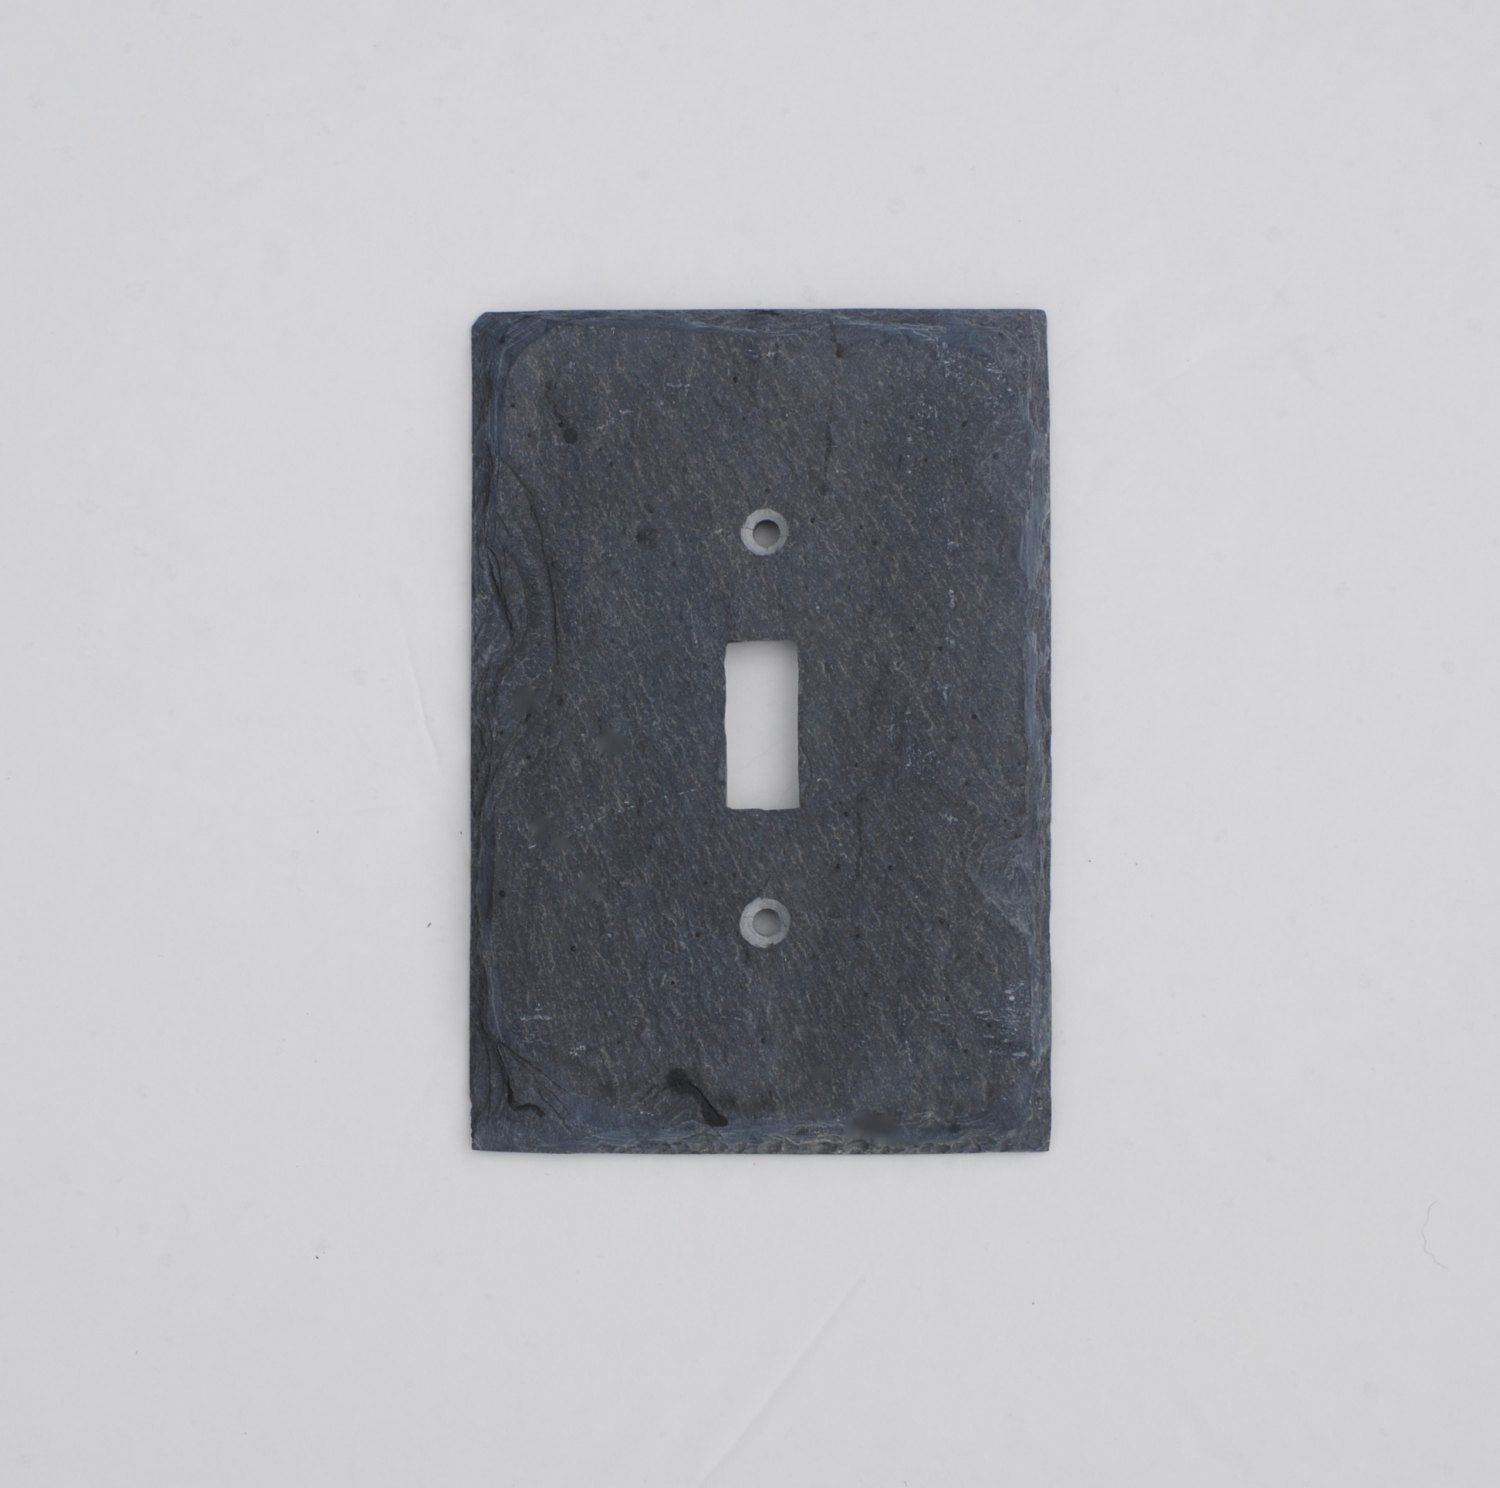 Metal Wall Plate Covers Decorative Light Switch Cover Switch Plate Wall Plate Rustic